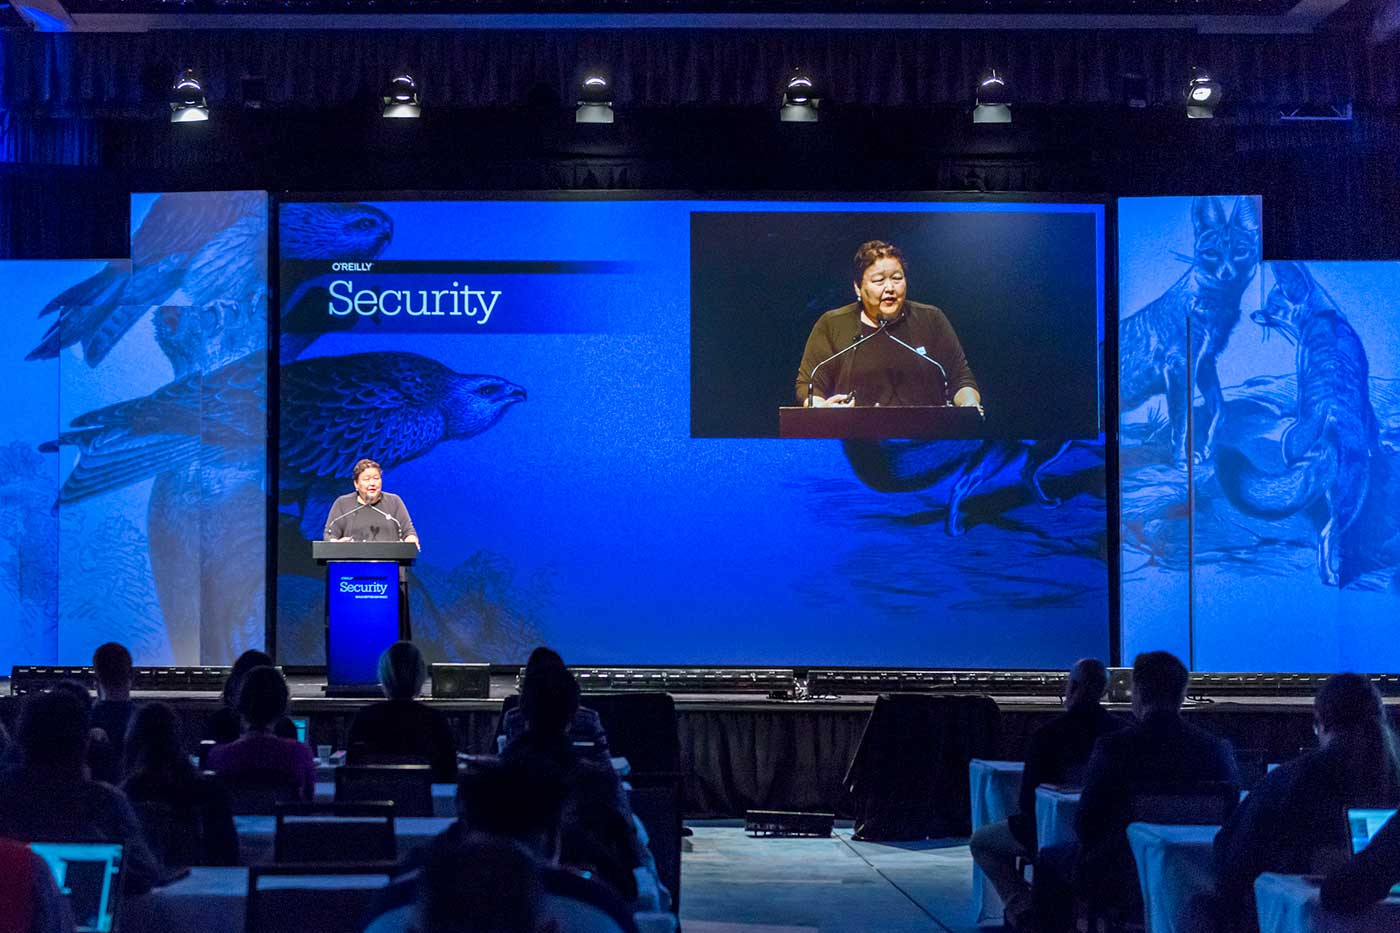 Rebecca Bace speaking at the 2016 O'Reilly Security Conference in New York.